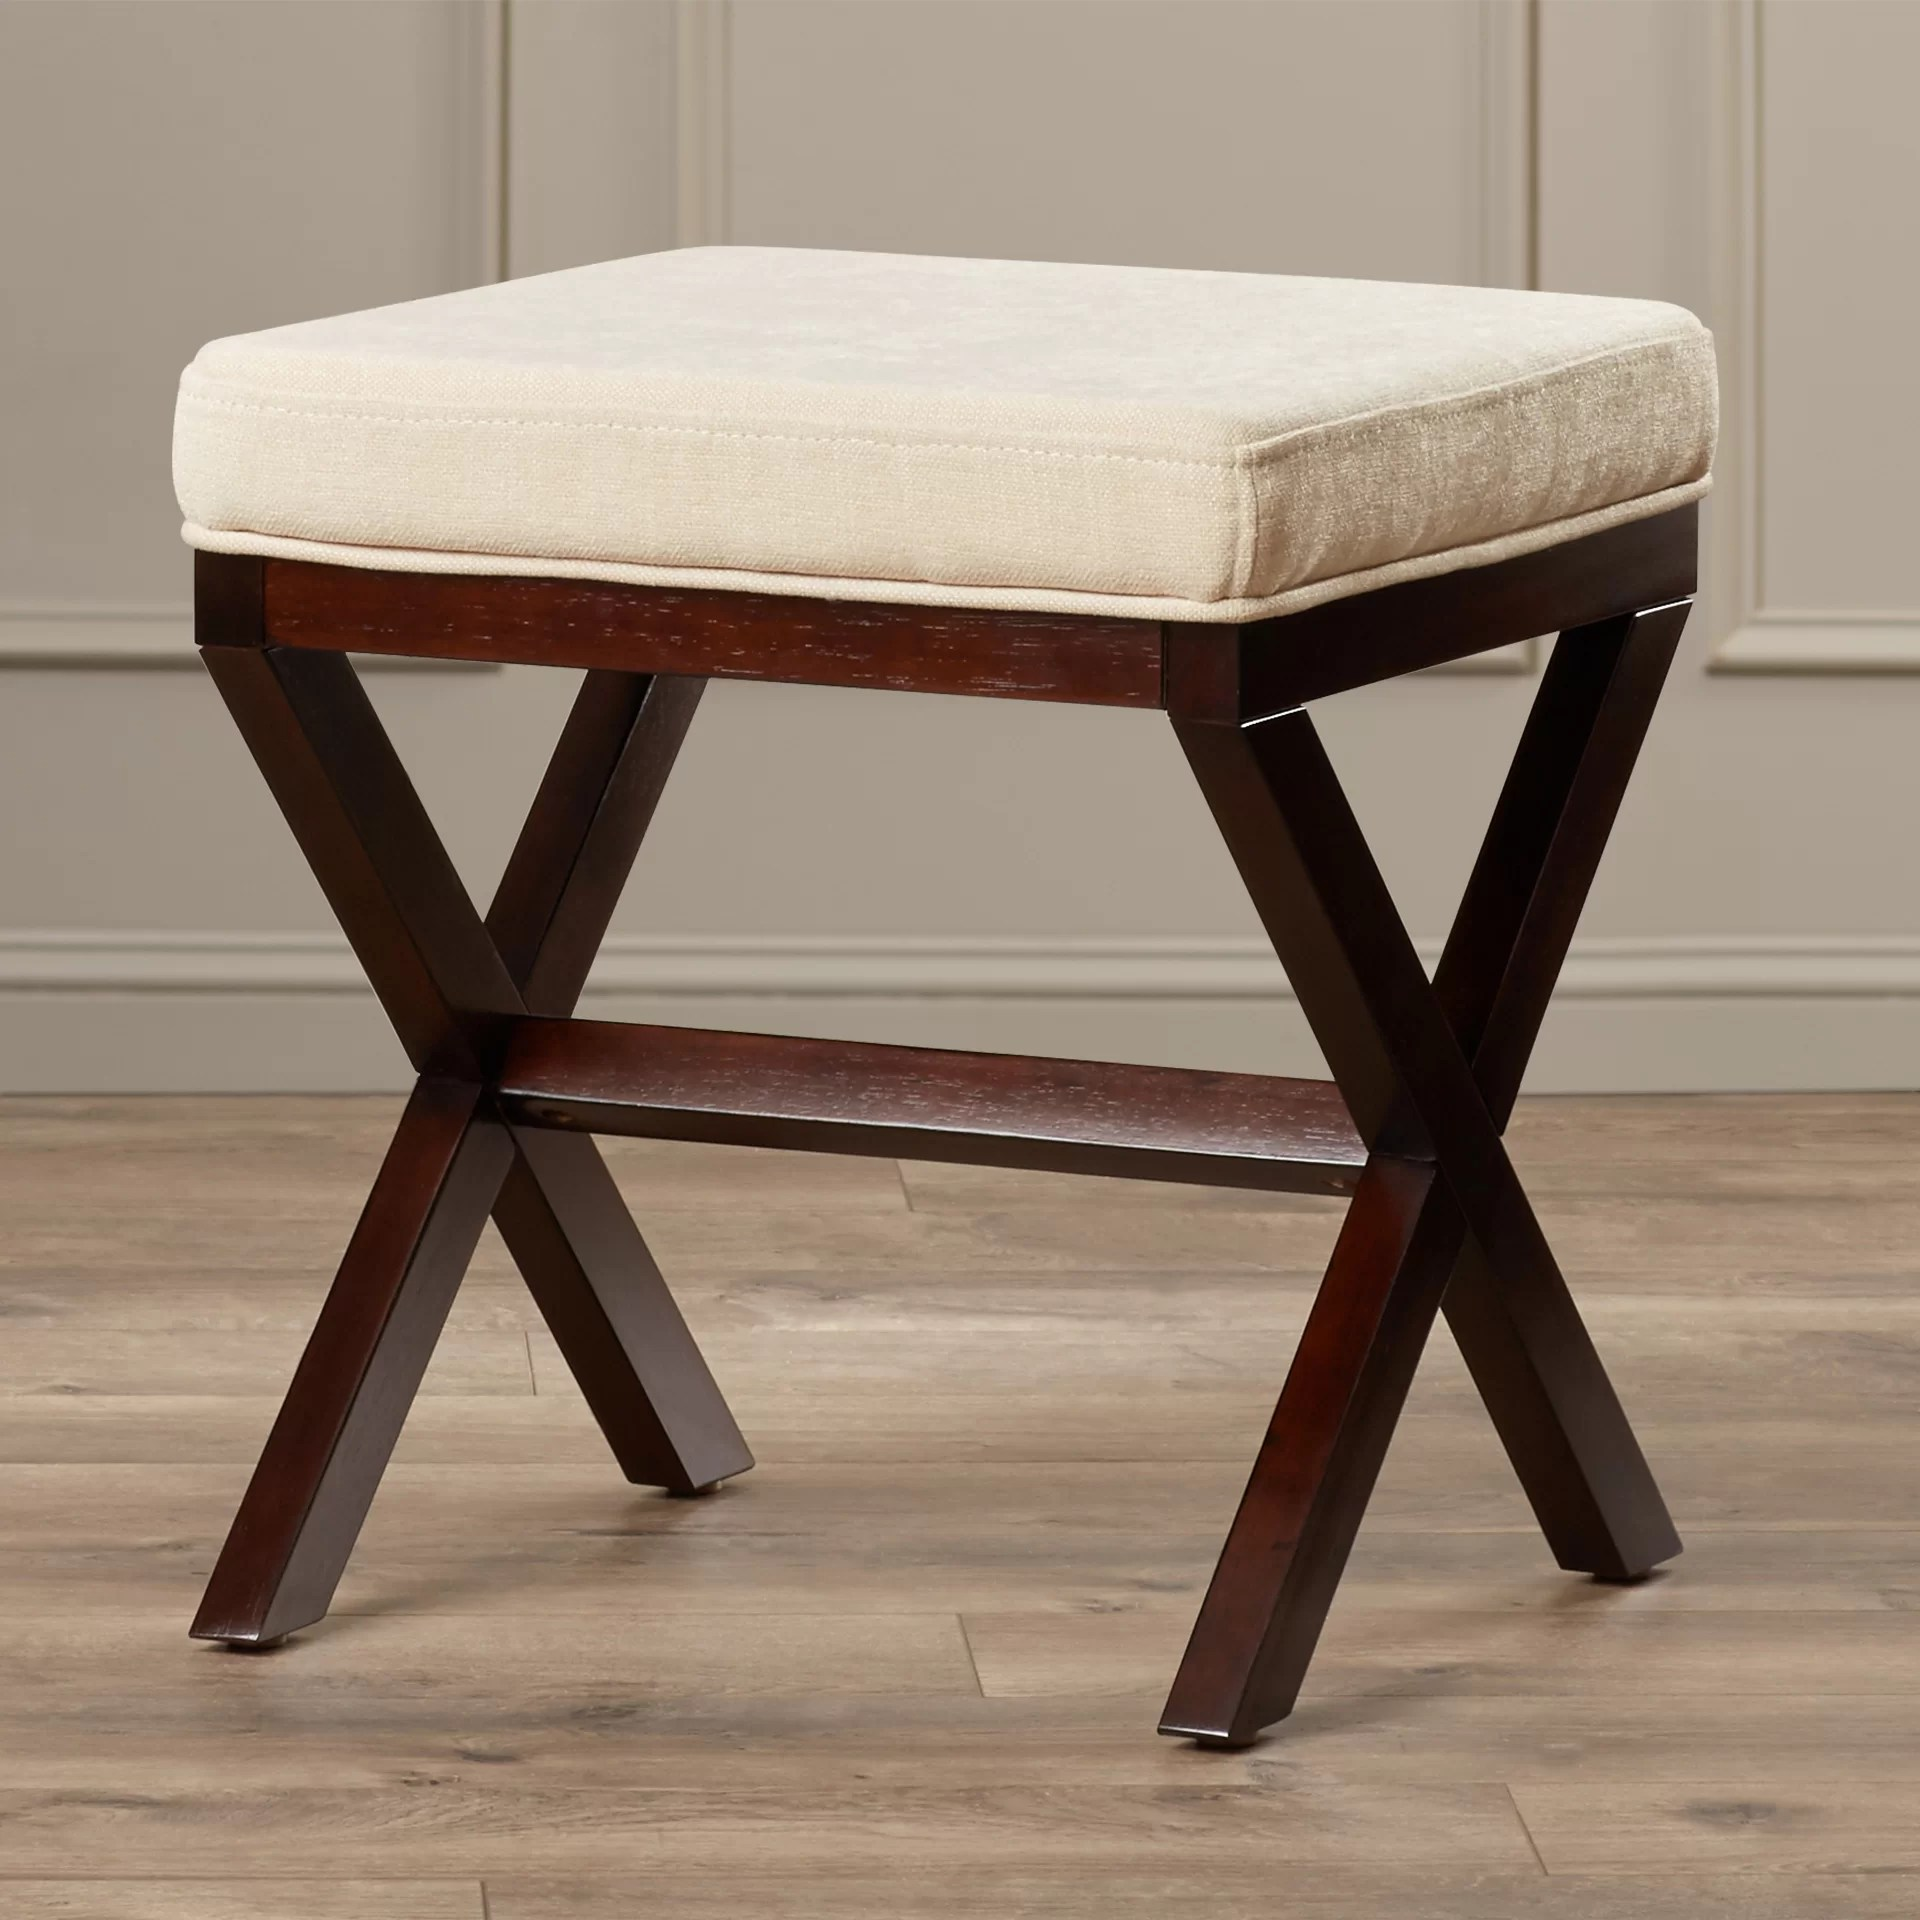 Wooden Vanity Chair Charlton Home Milford Wood Vanity Stool And Reviews Wayfair